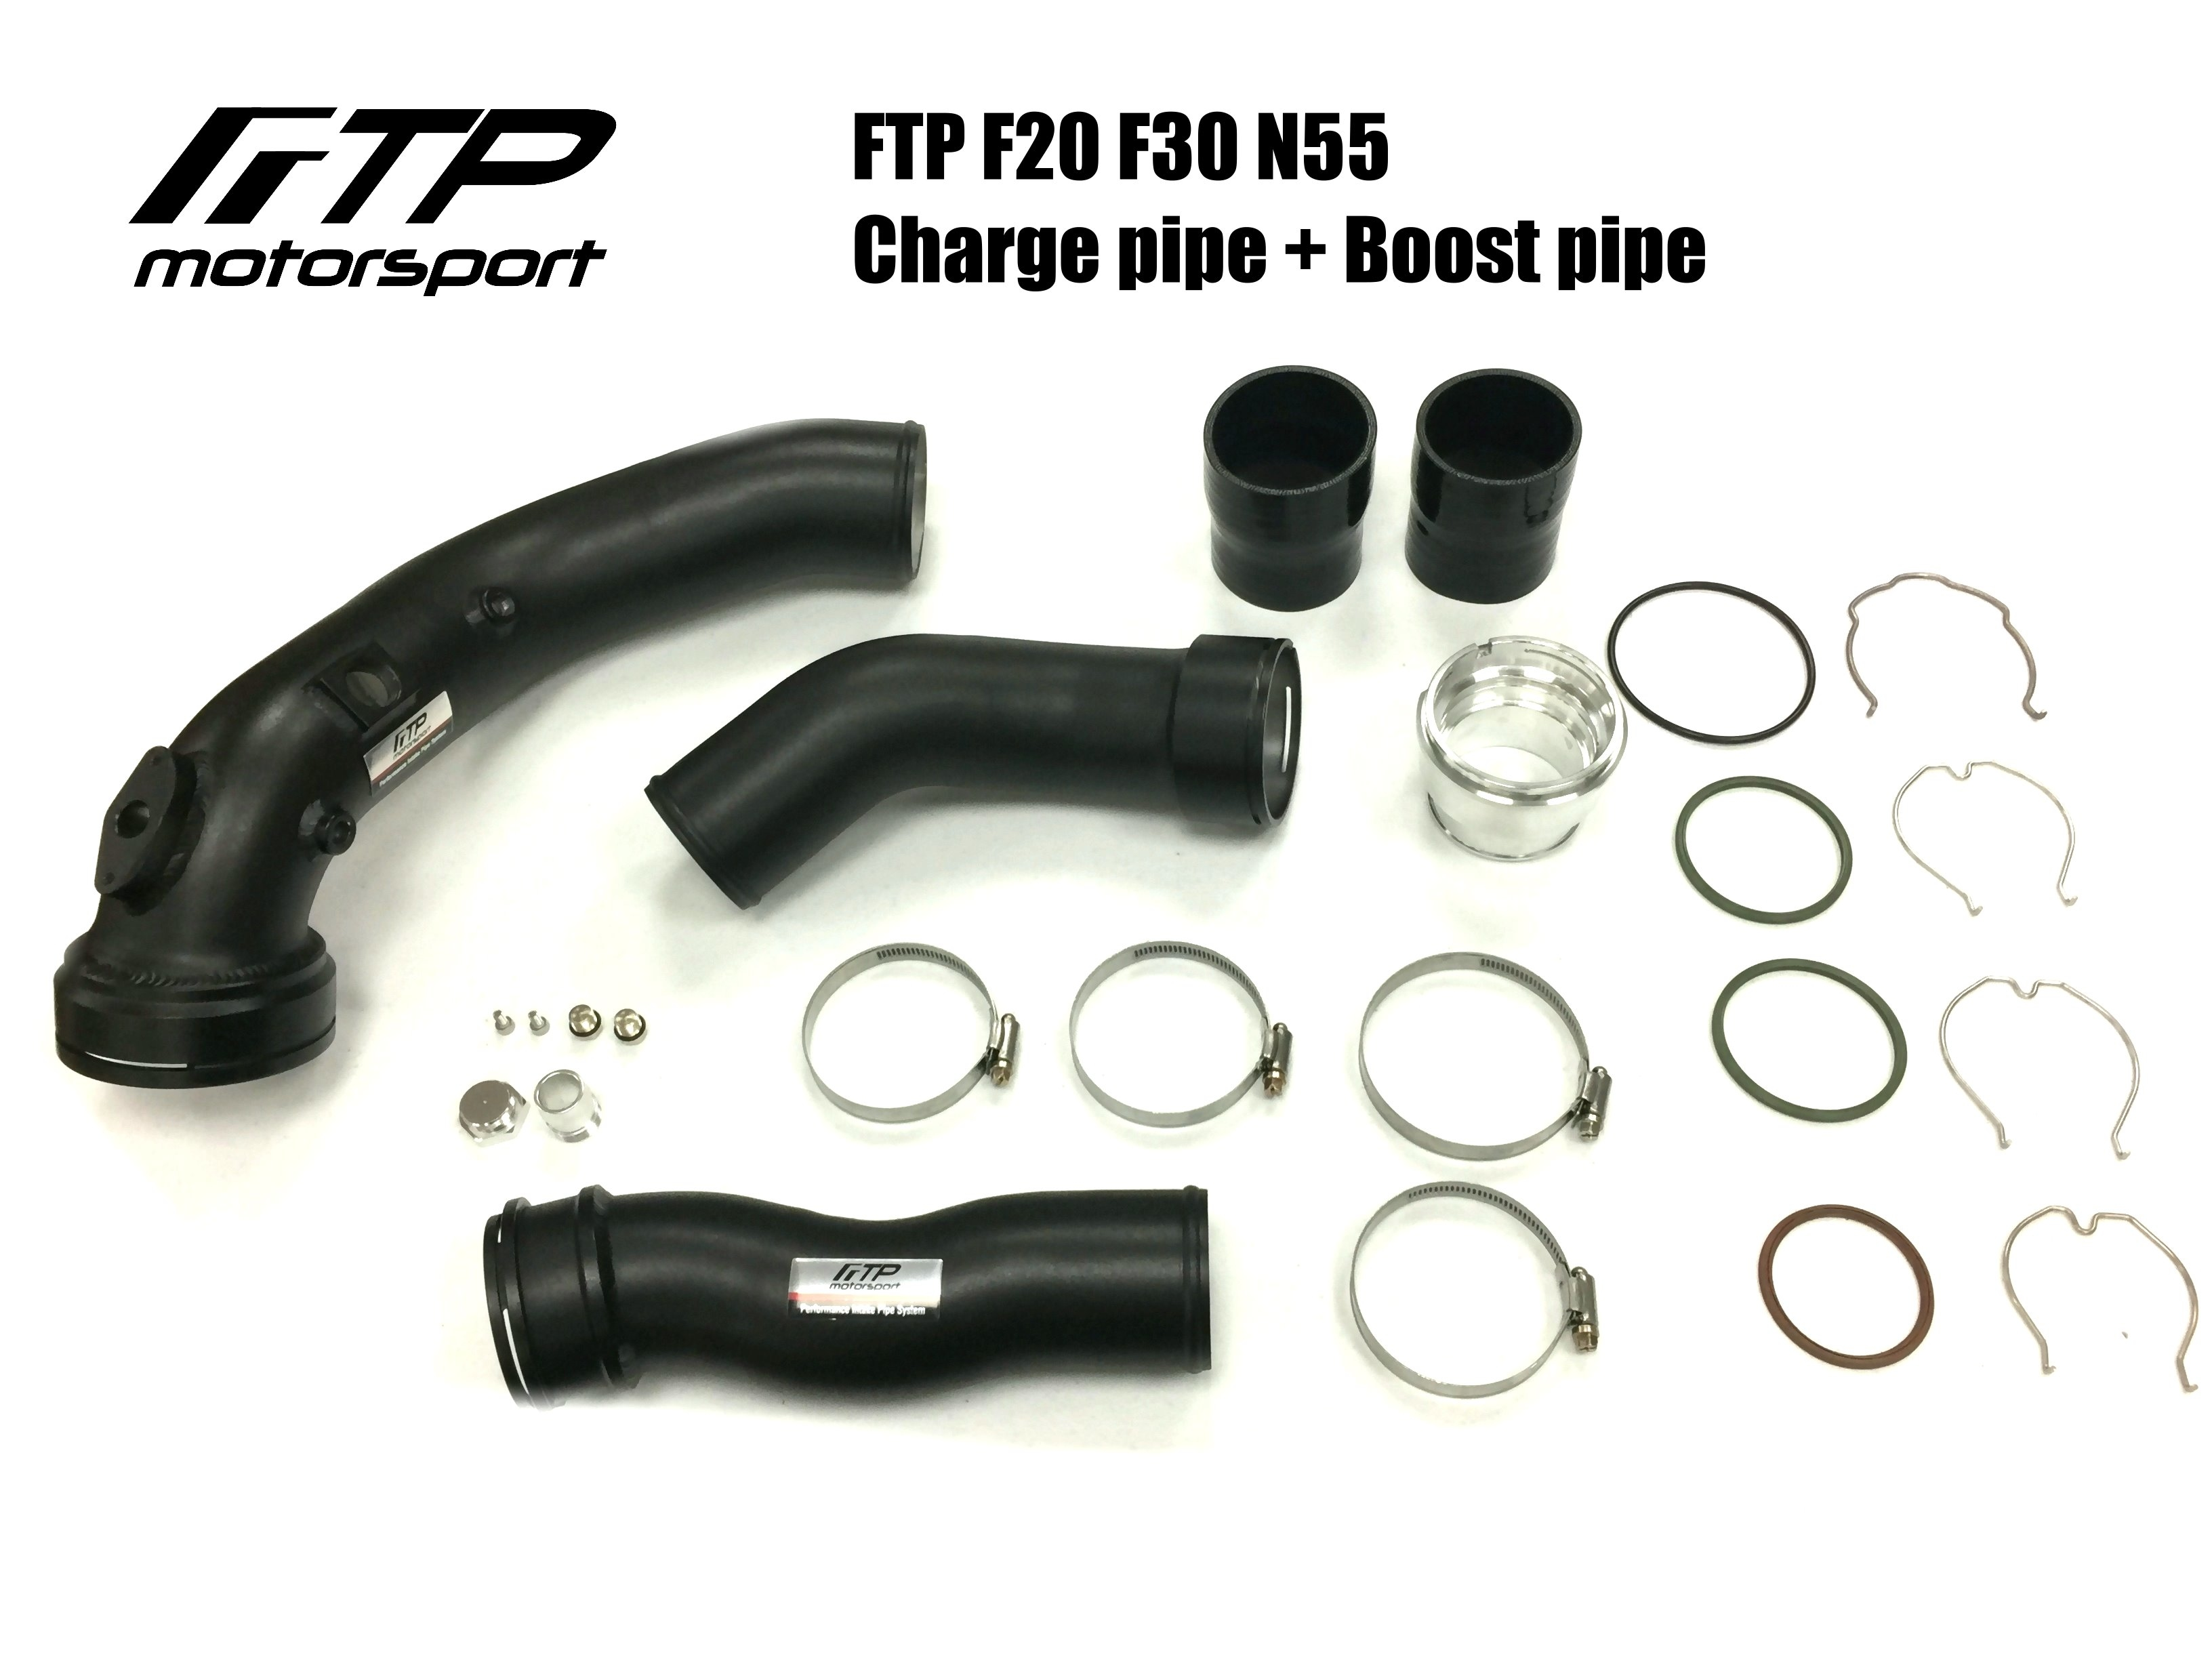 FTP F2X F3X N55 charge pipe Combination packages